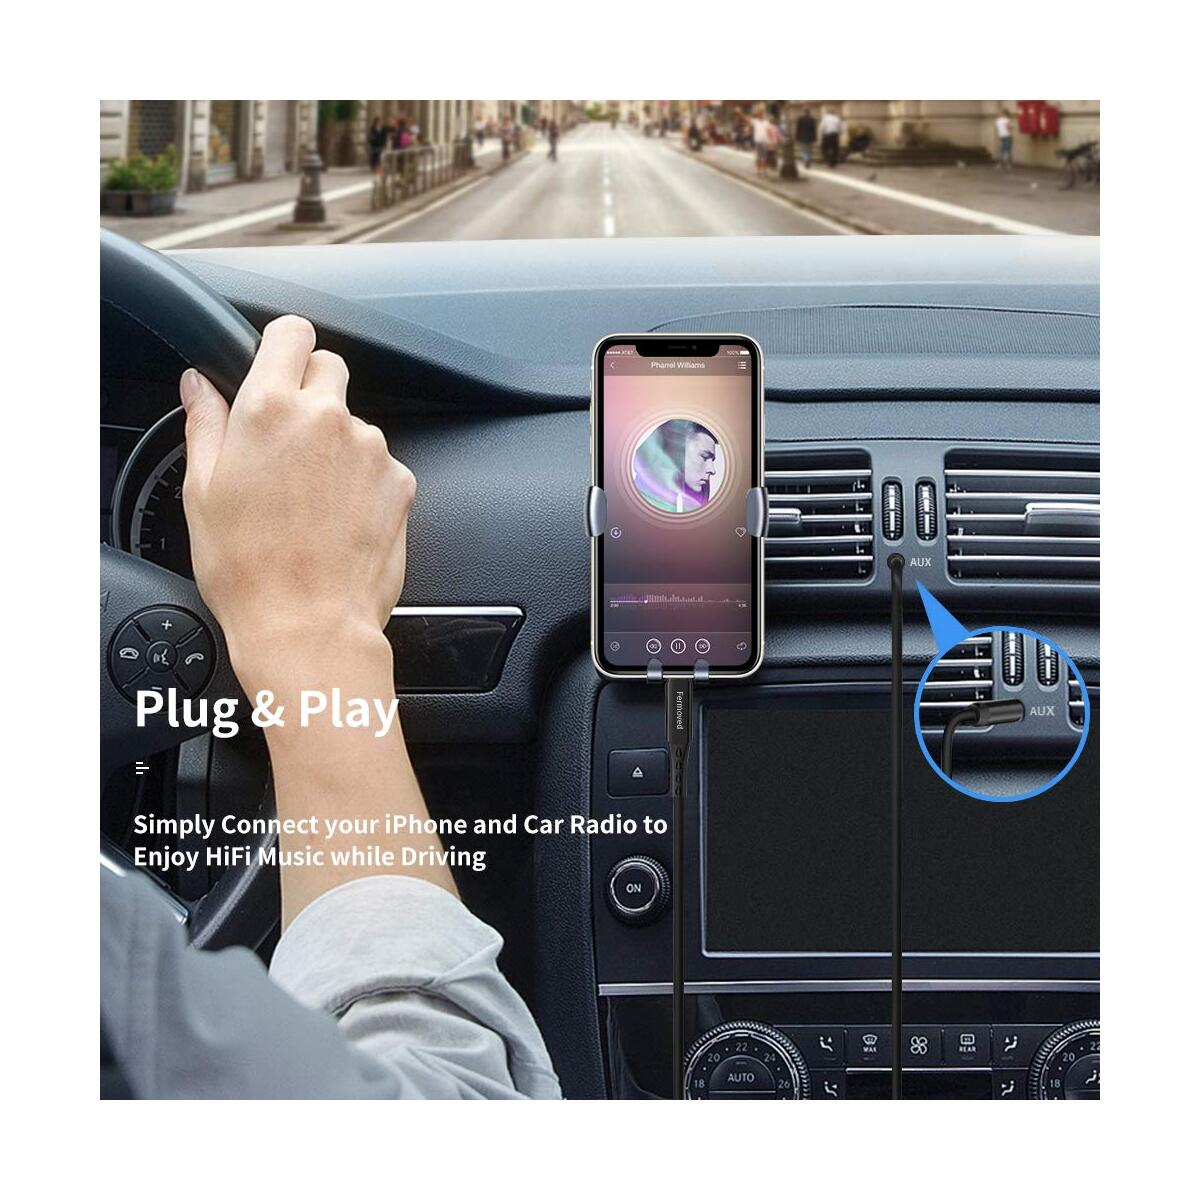 Aux Cord for iPhone, Fermoved Audio Cable Aux Cable for iPhone 11/11 Pro/11 Pro Max/X/XS/XR/8/8 Plus/7/iPad/iPod to 3.5 mm Car Stereo, Speaker, Headphone, Supports All iOS Version (3.4ft/1M)